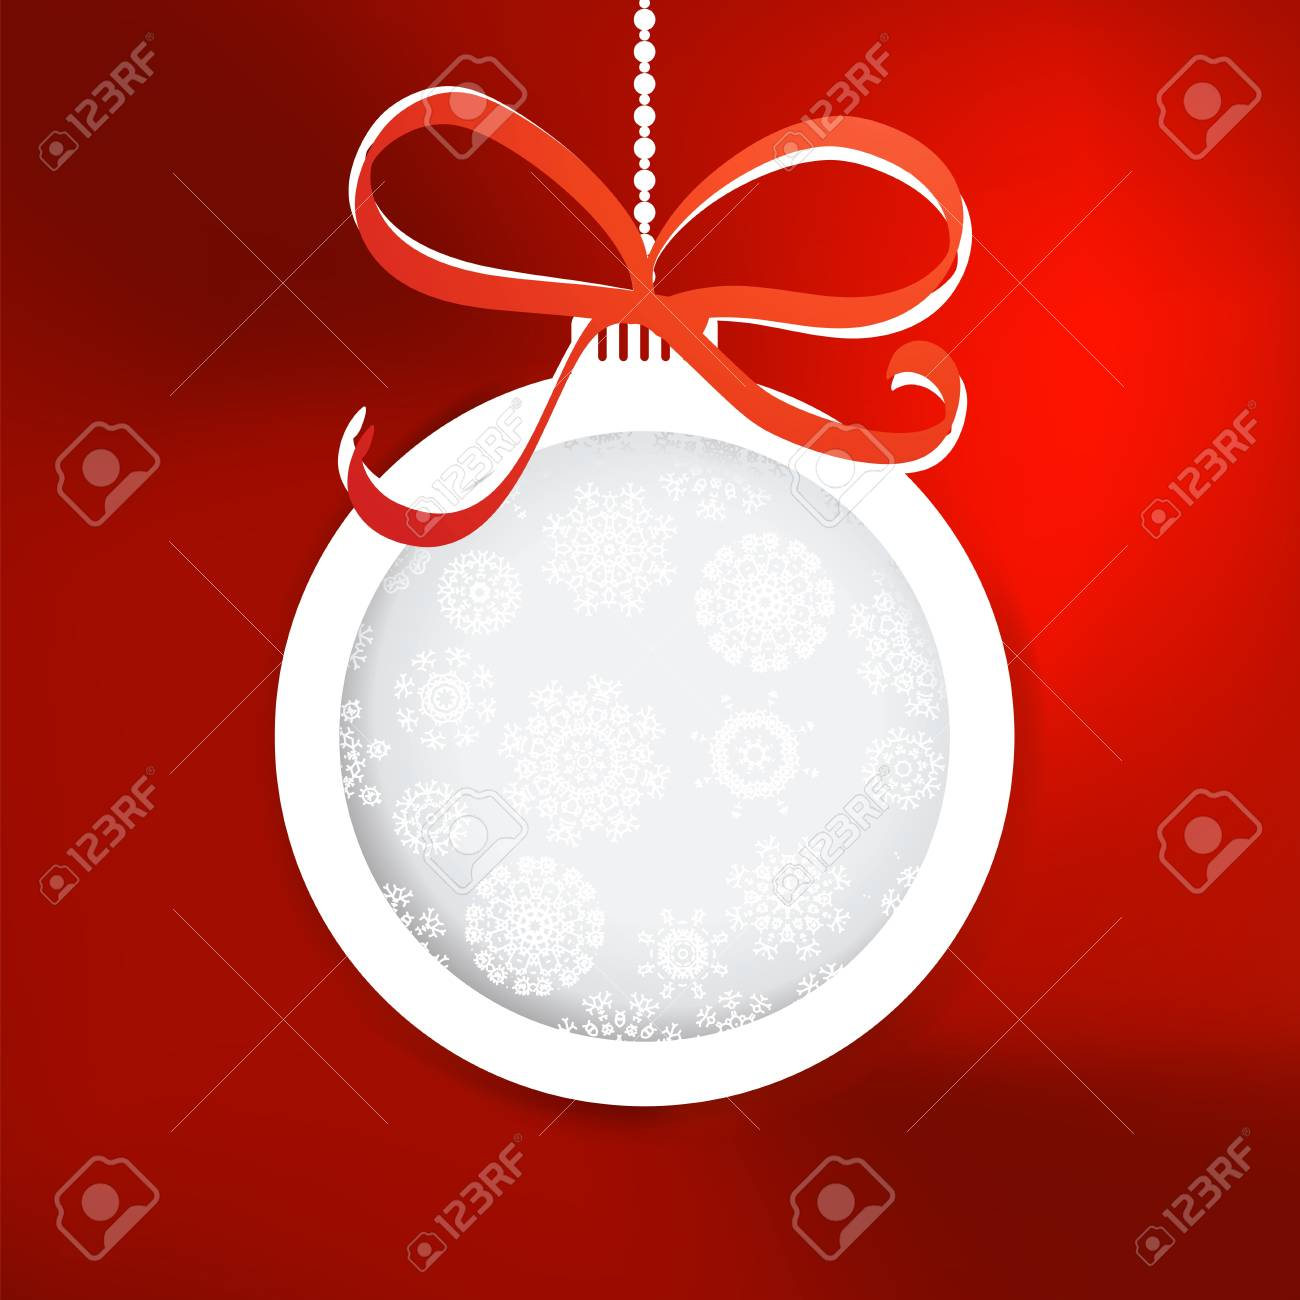 Christmas ball cutted from paper on red     EPS8 Stock Vector - 17525401